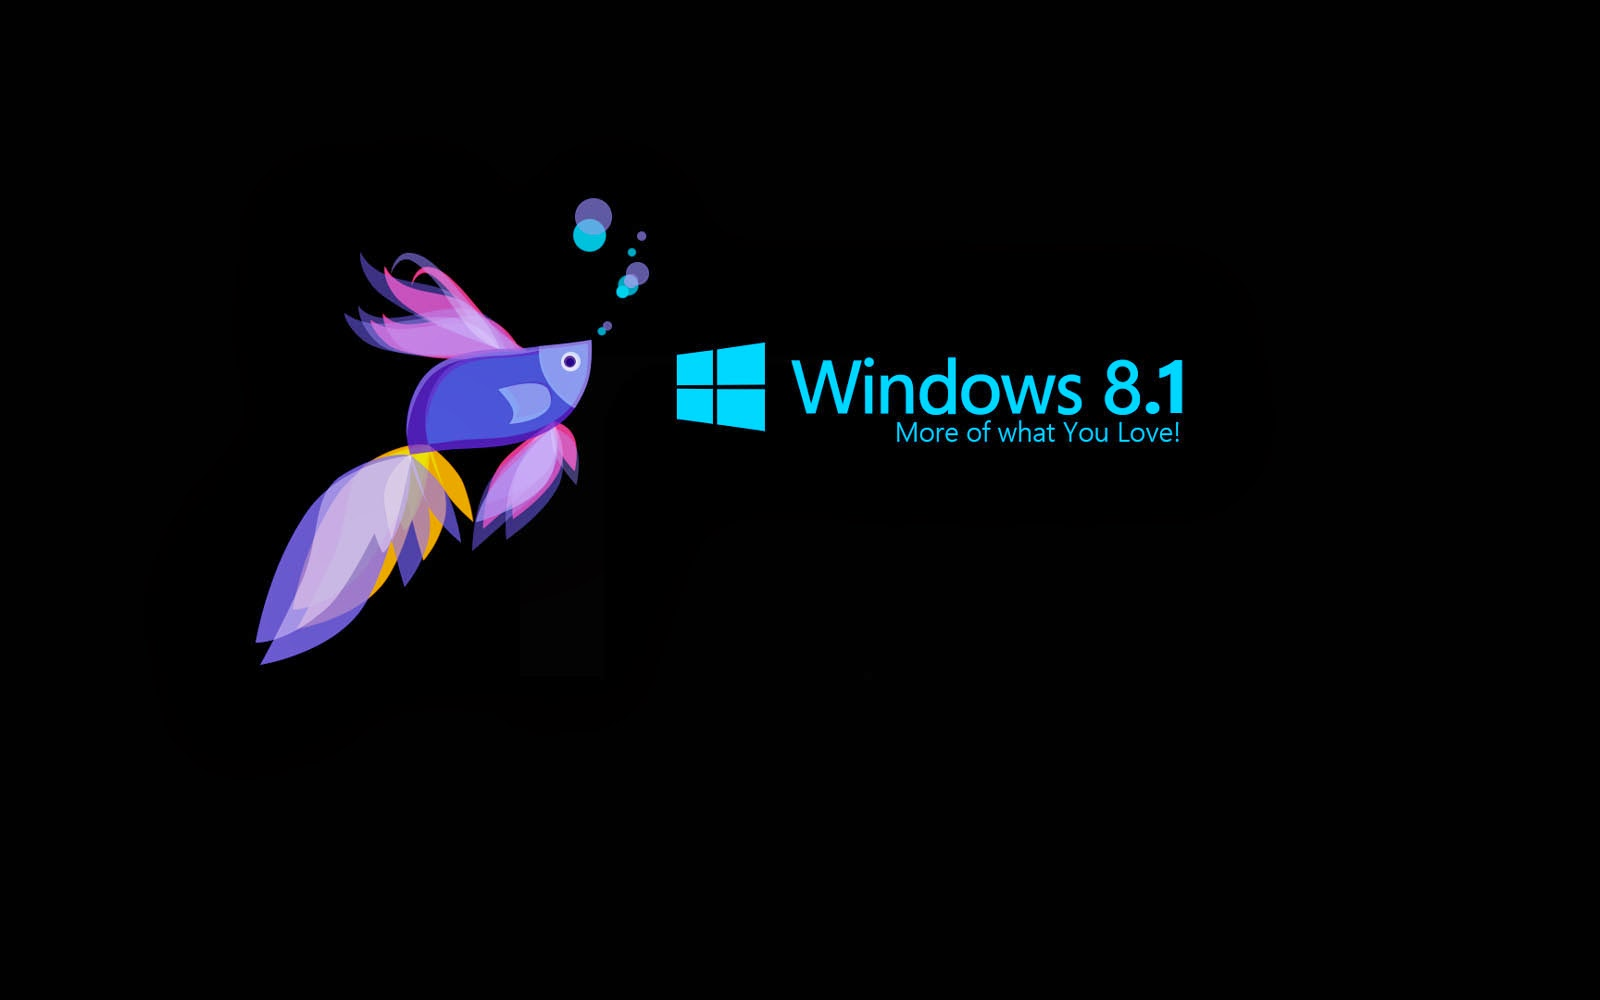 free 3d wallpapers download: windows 8.1 wallpapers